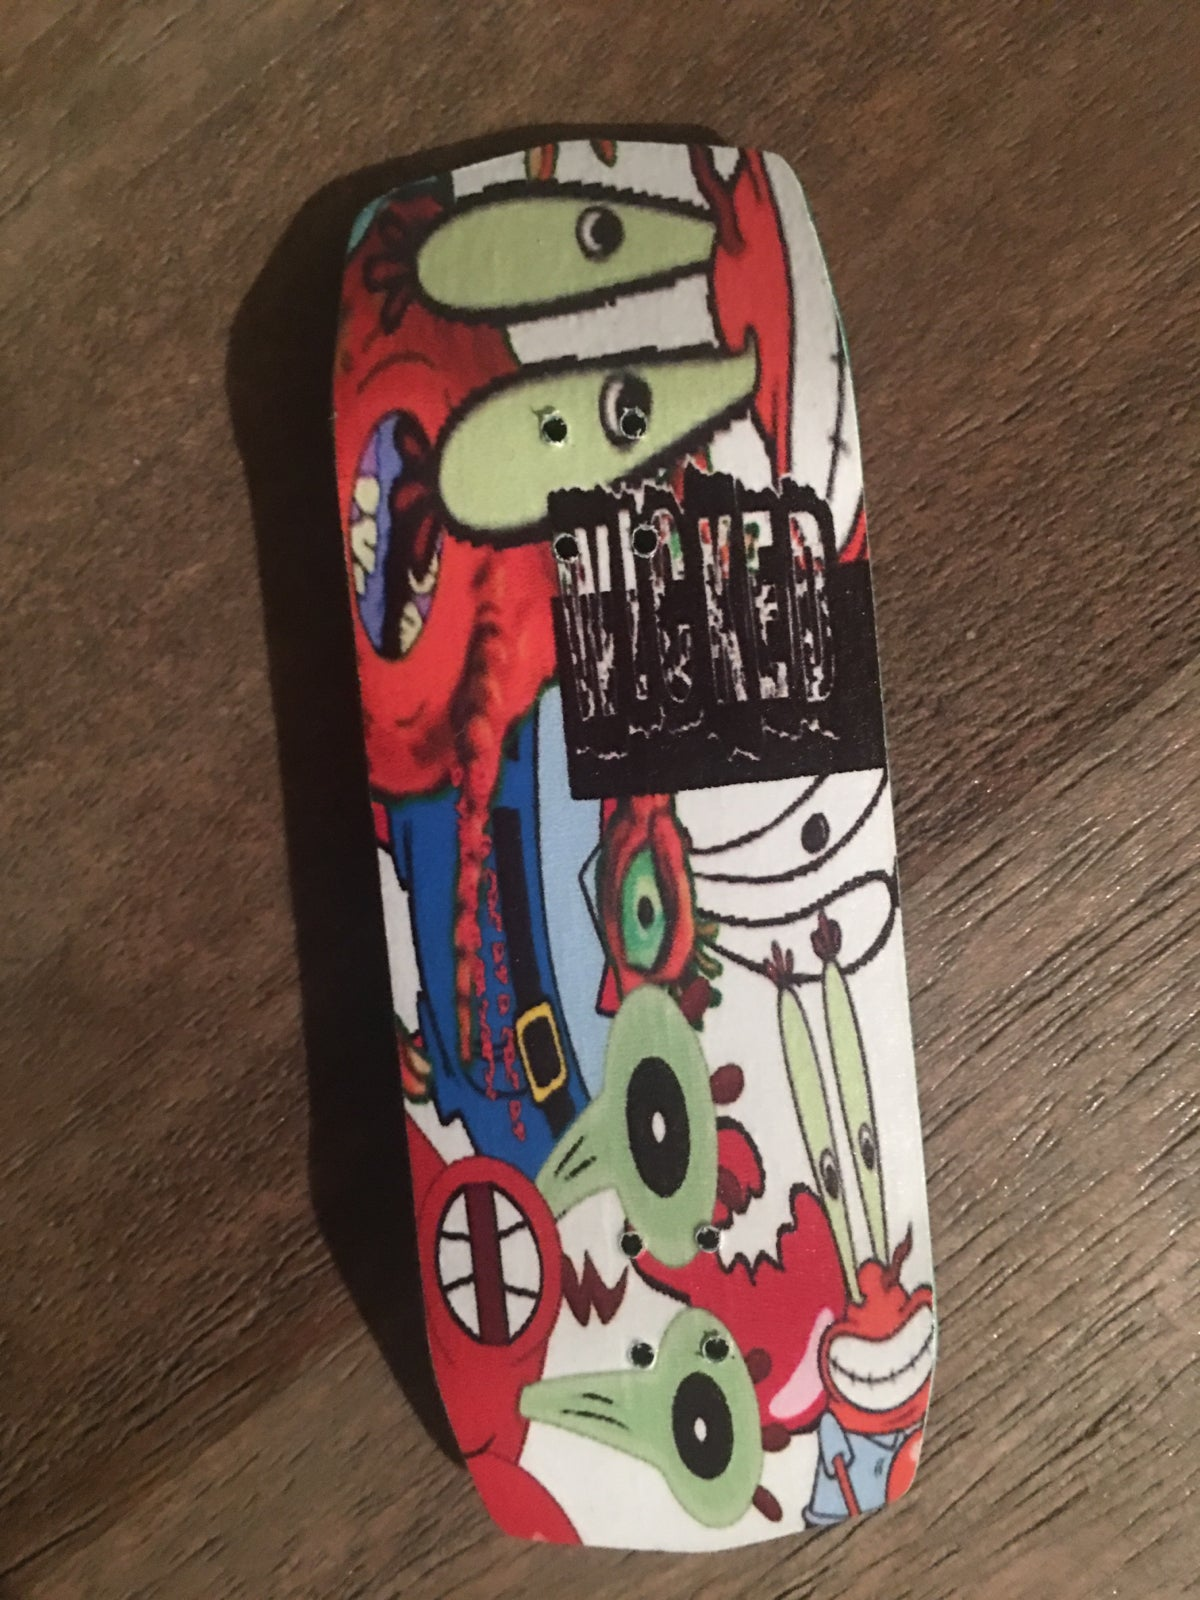 d072c835825a2 Image of So many Krabs, so little time! Customizable 33-36mm Fingerboard